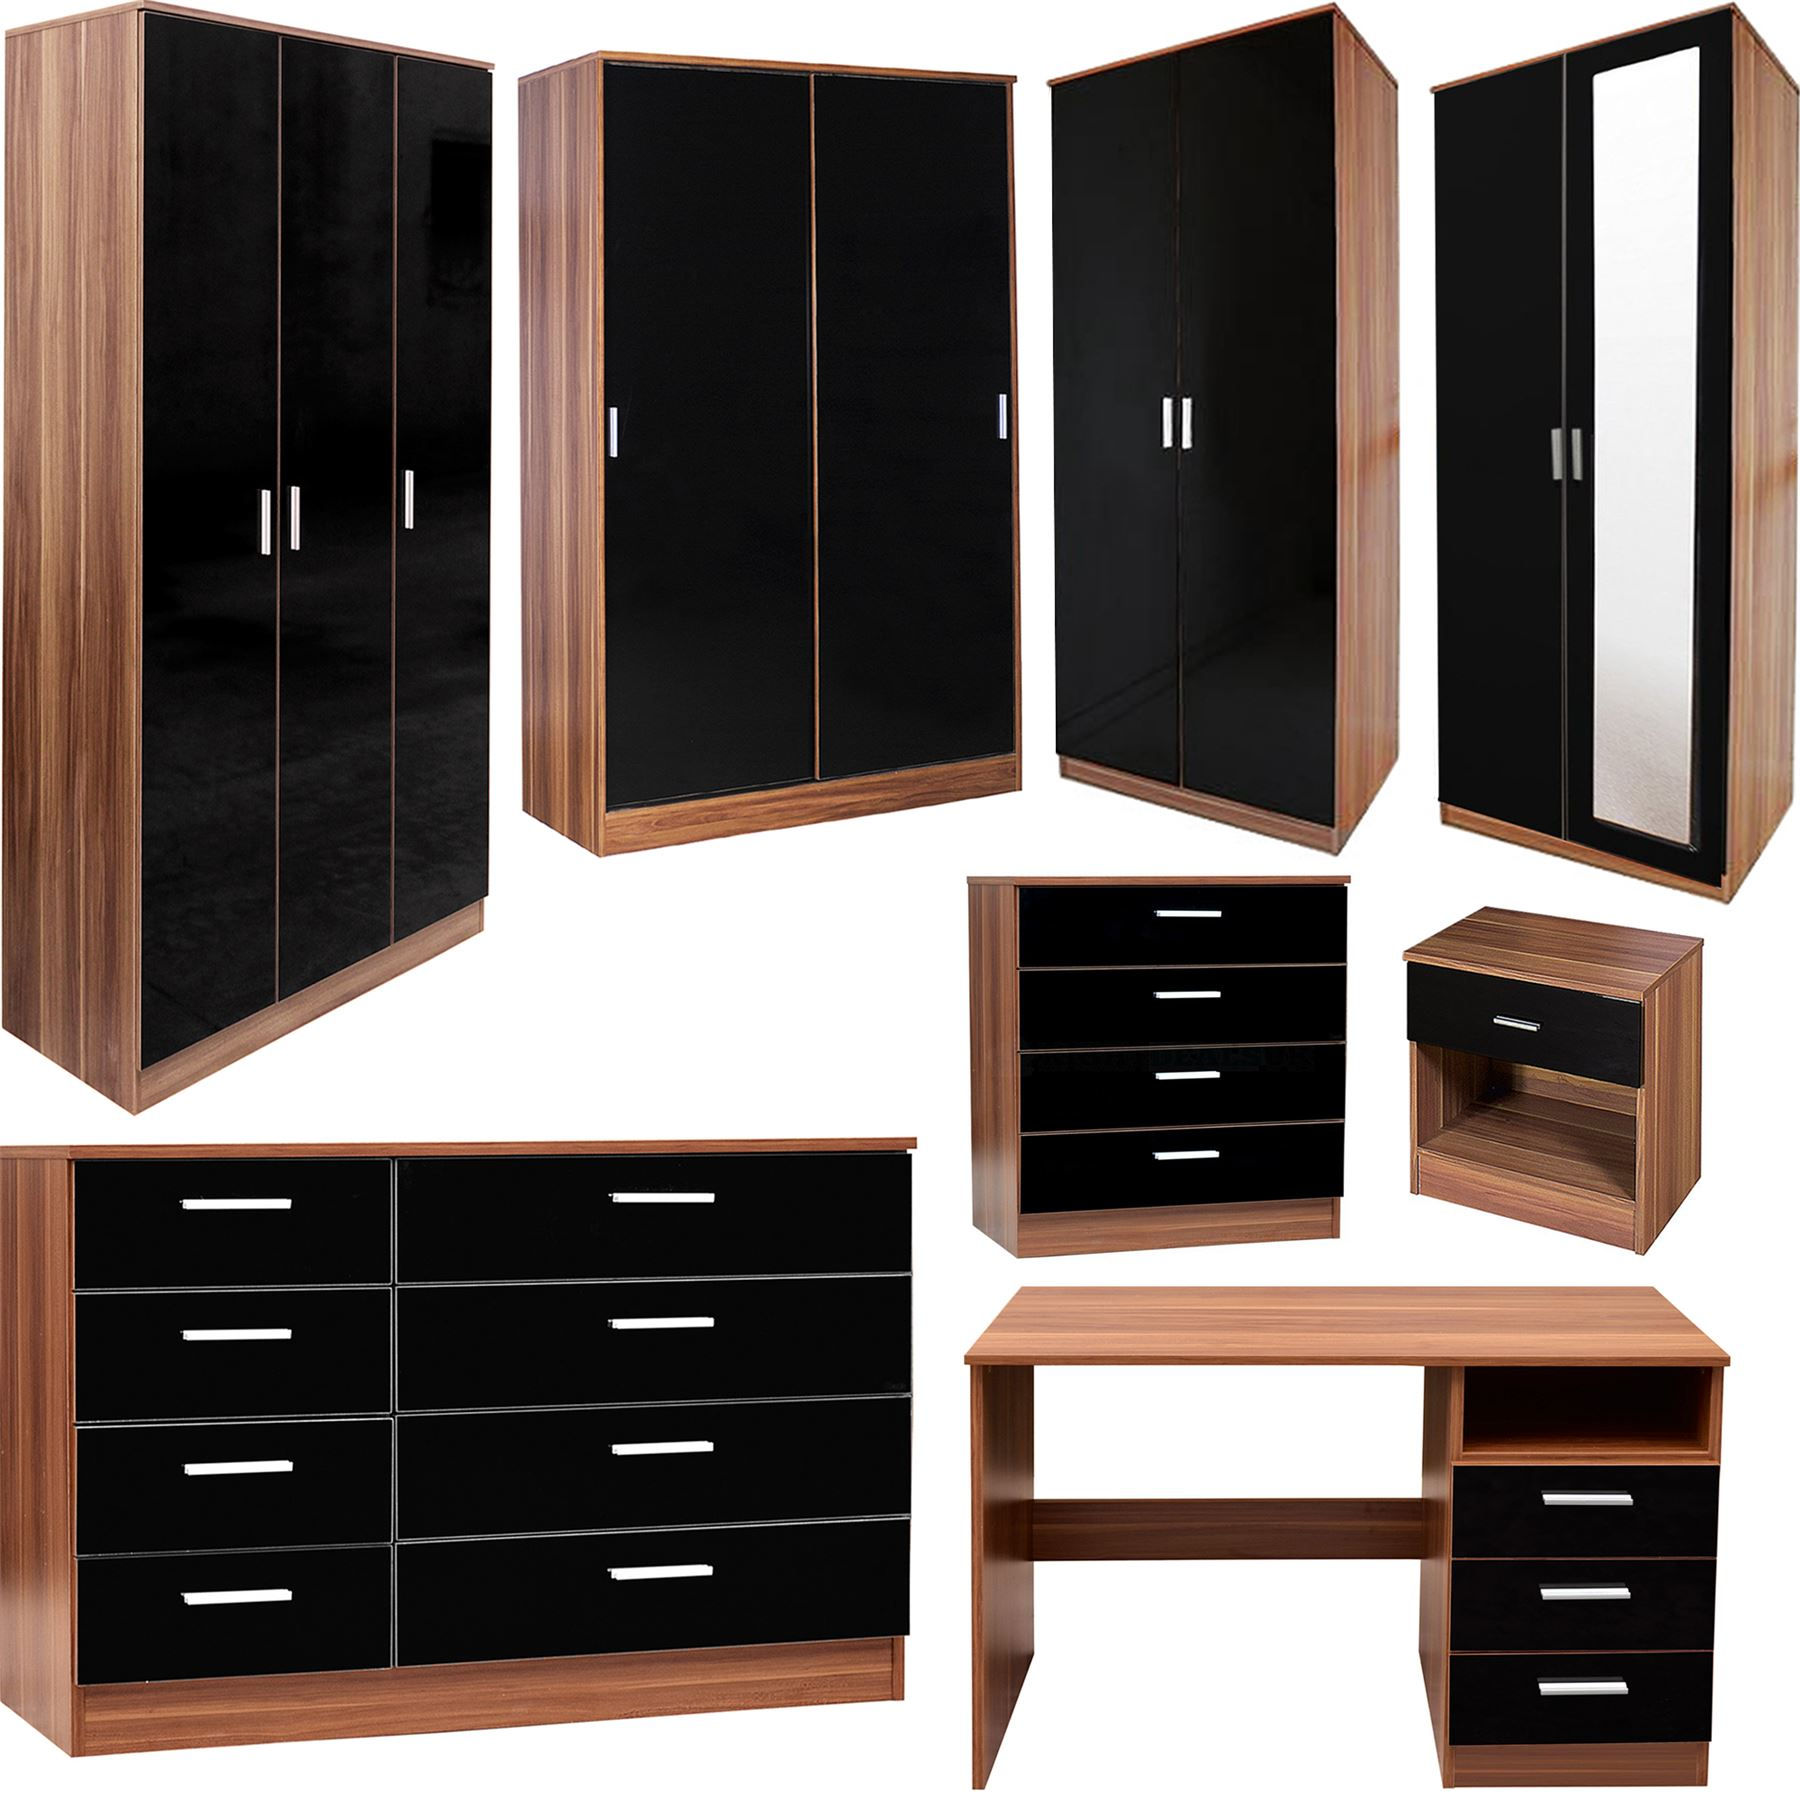 BEDROOM FURNITURE 3 PIECE SET BLACK GLOSS & WALNUT WARDROBE